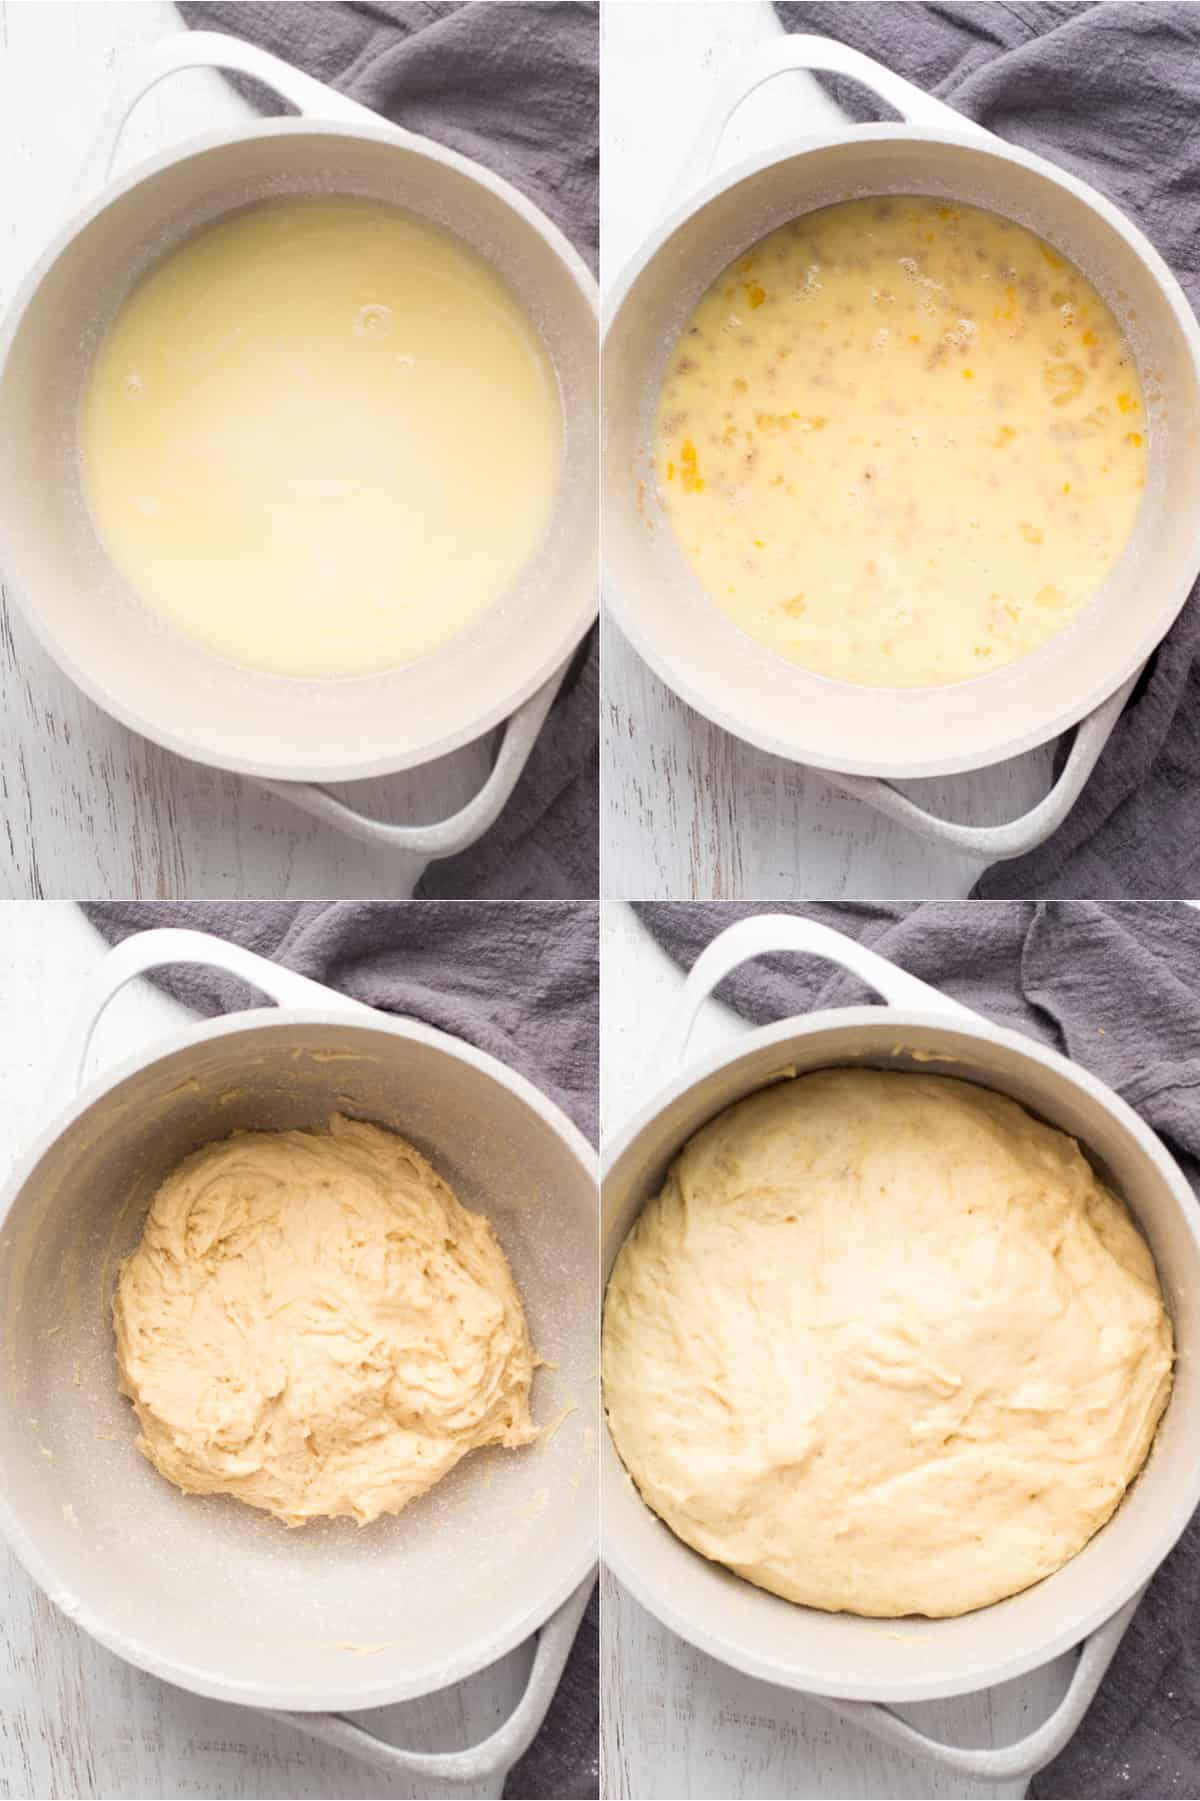 How to make the dough for this sweet bread recipe.